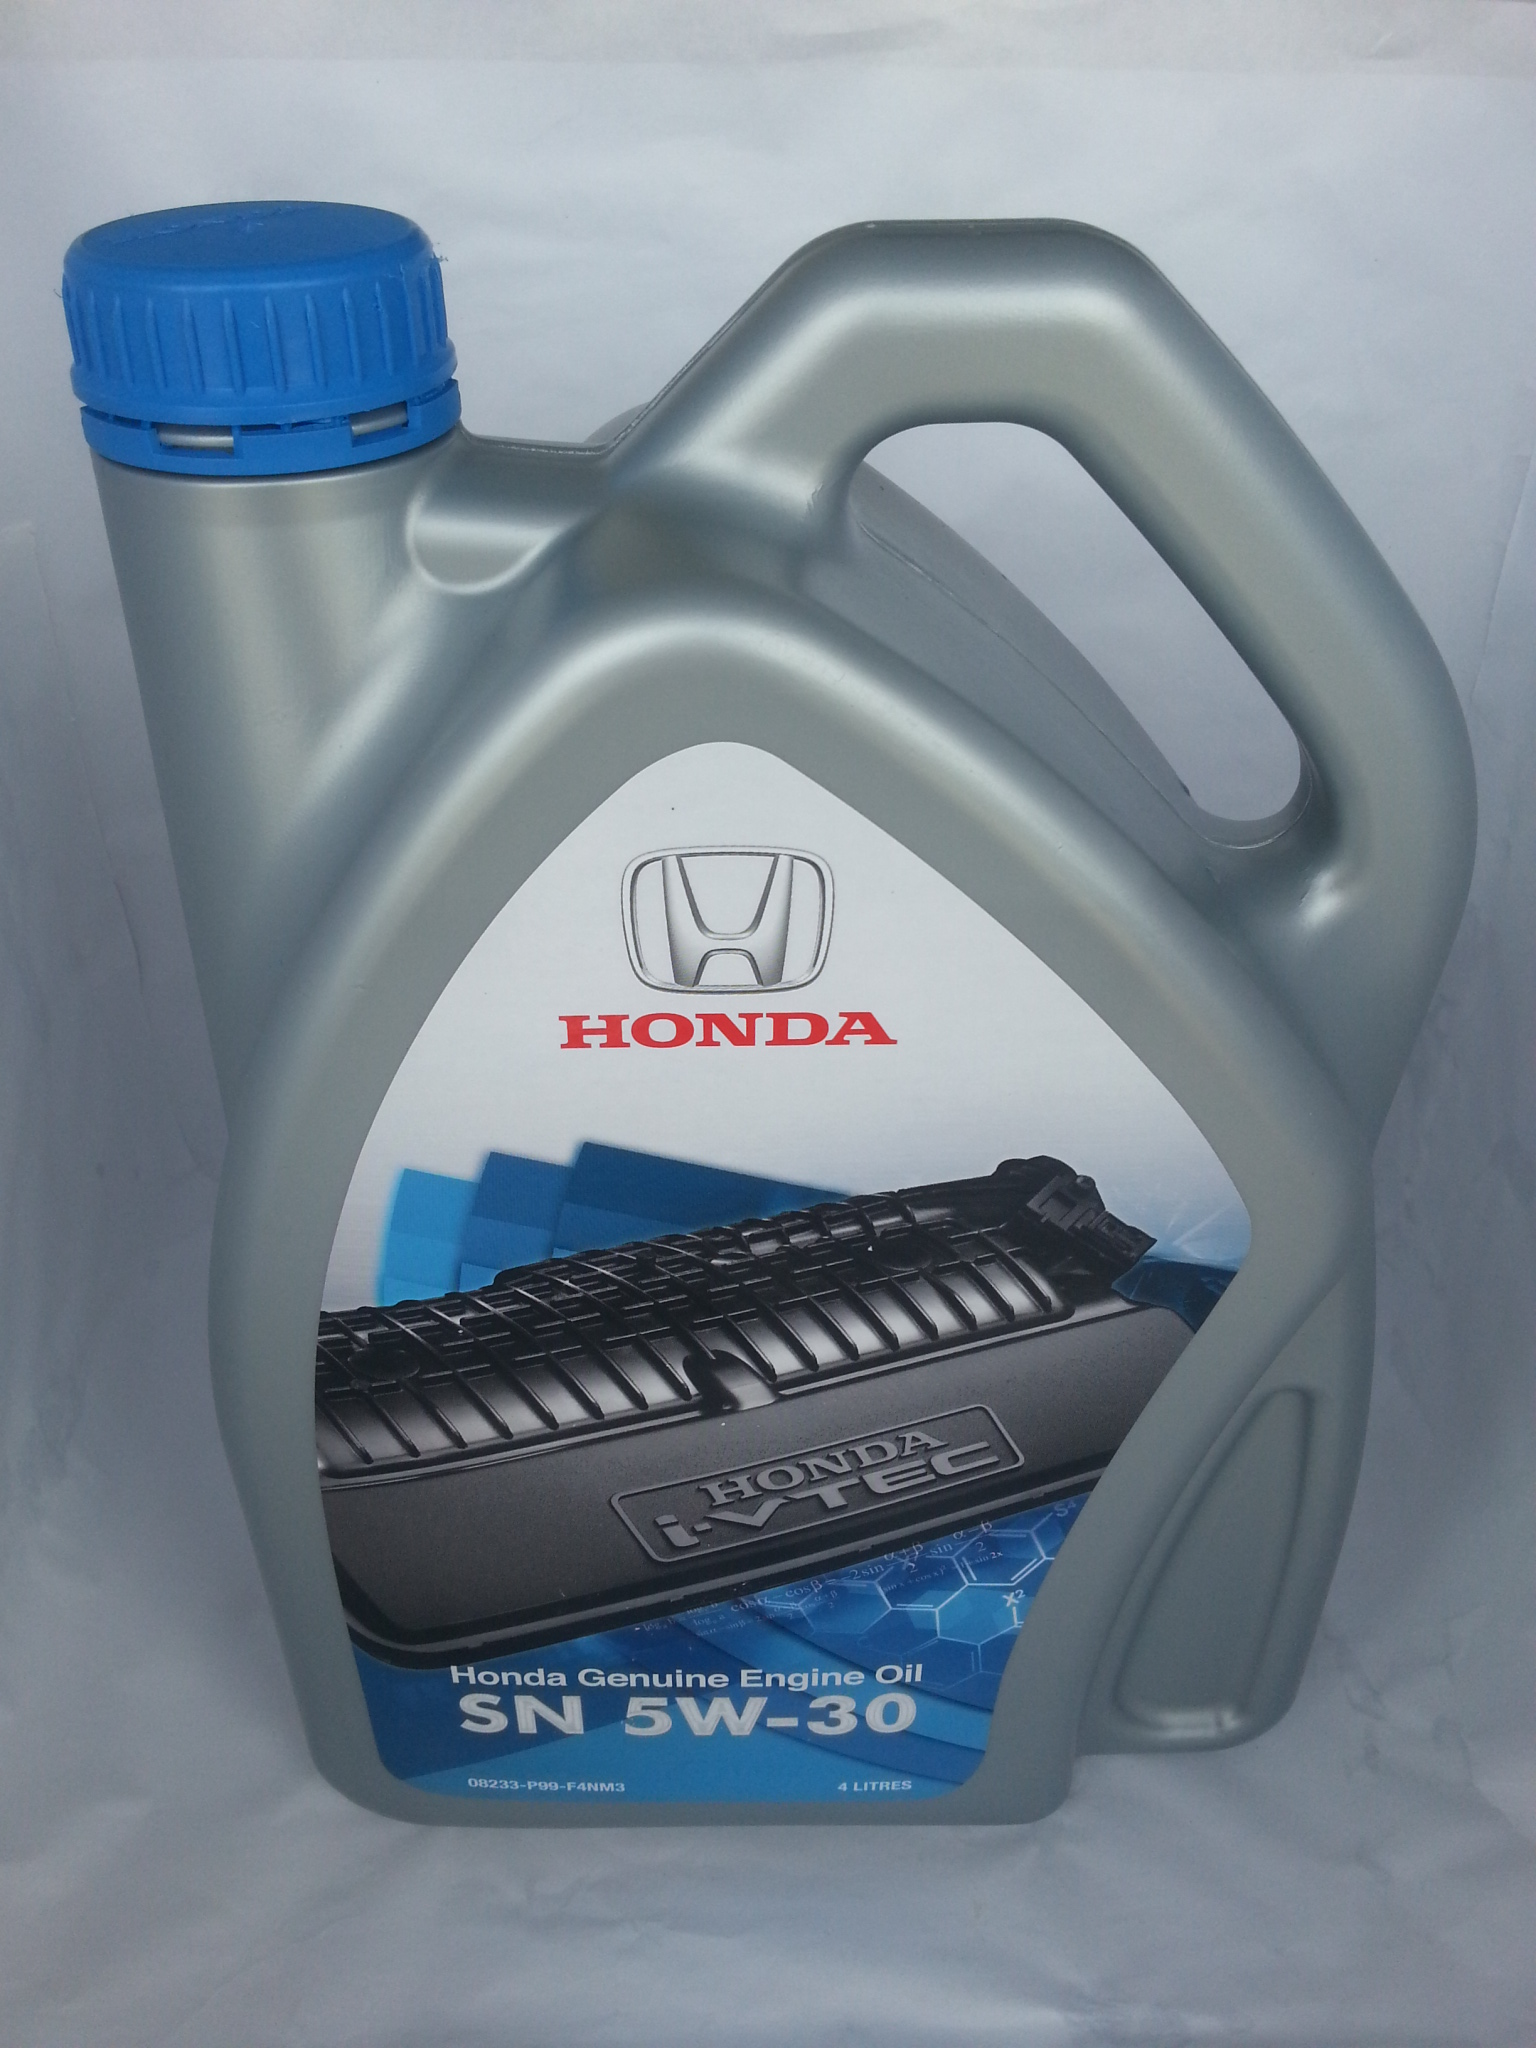 Honda Engine Oil Sn 5w 30 Semi Synthetic 4 Liter